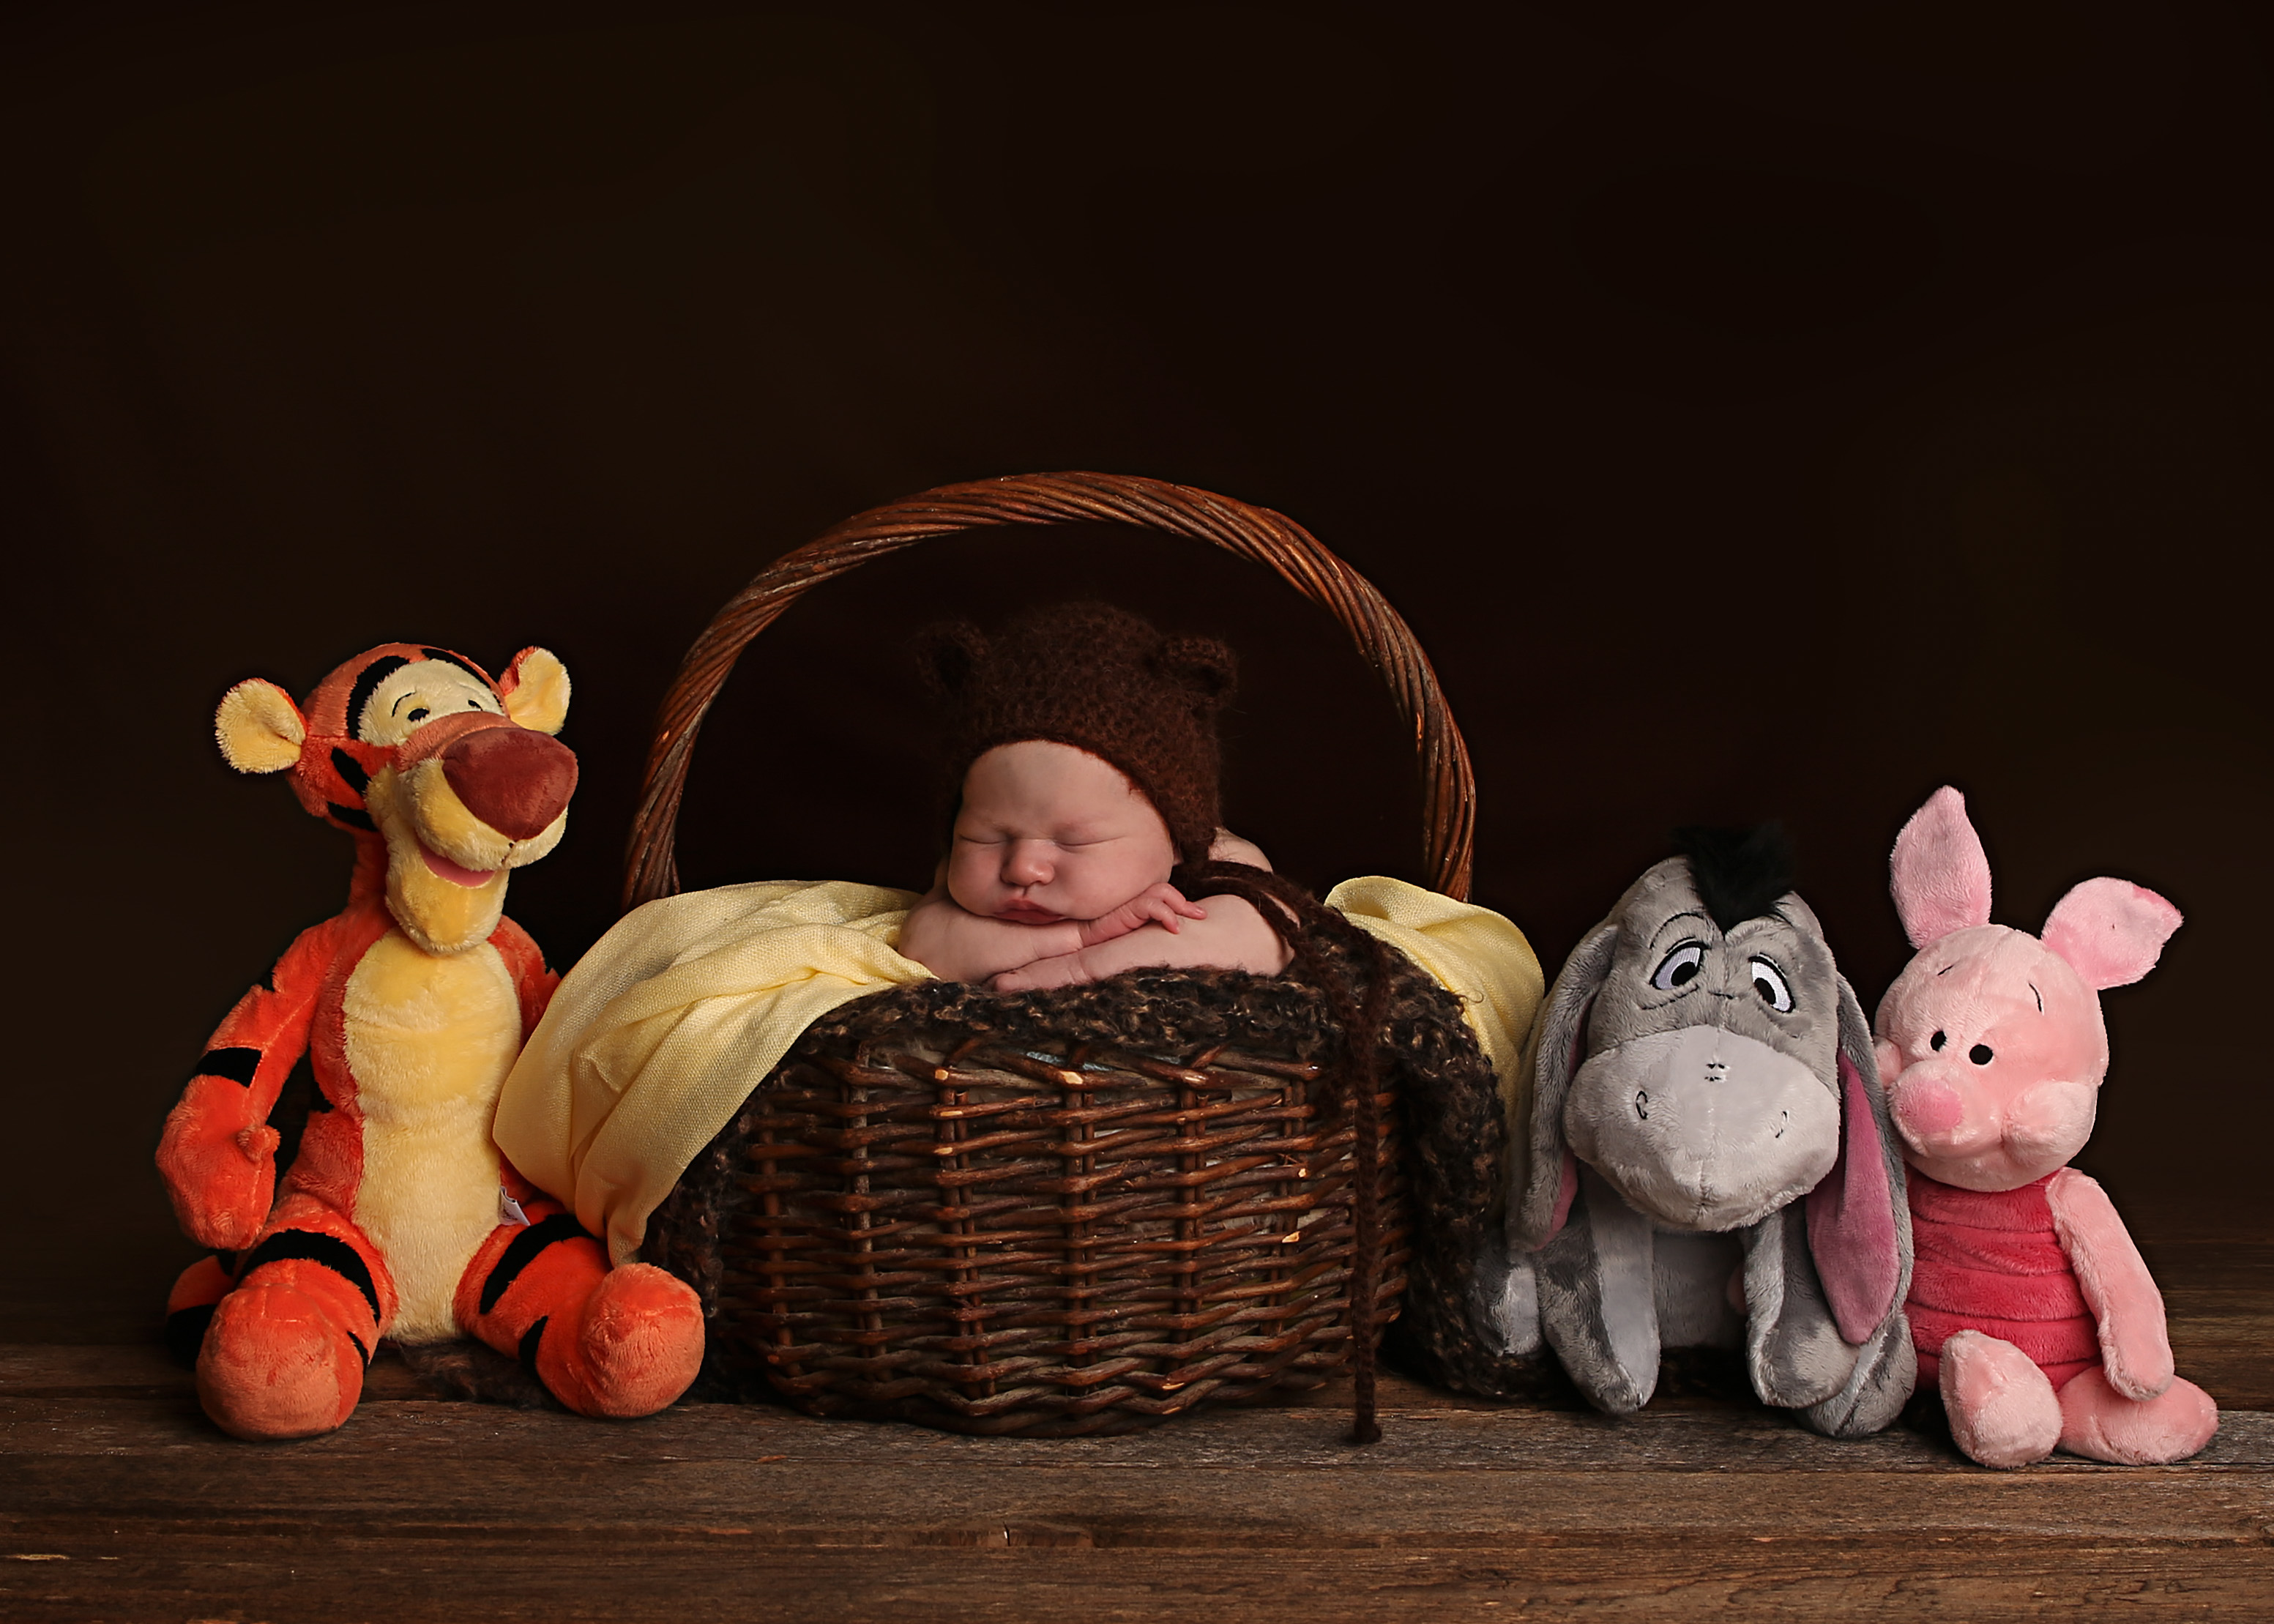 winnie the pooh themes newborn photo comox valley